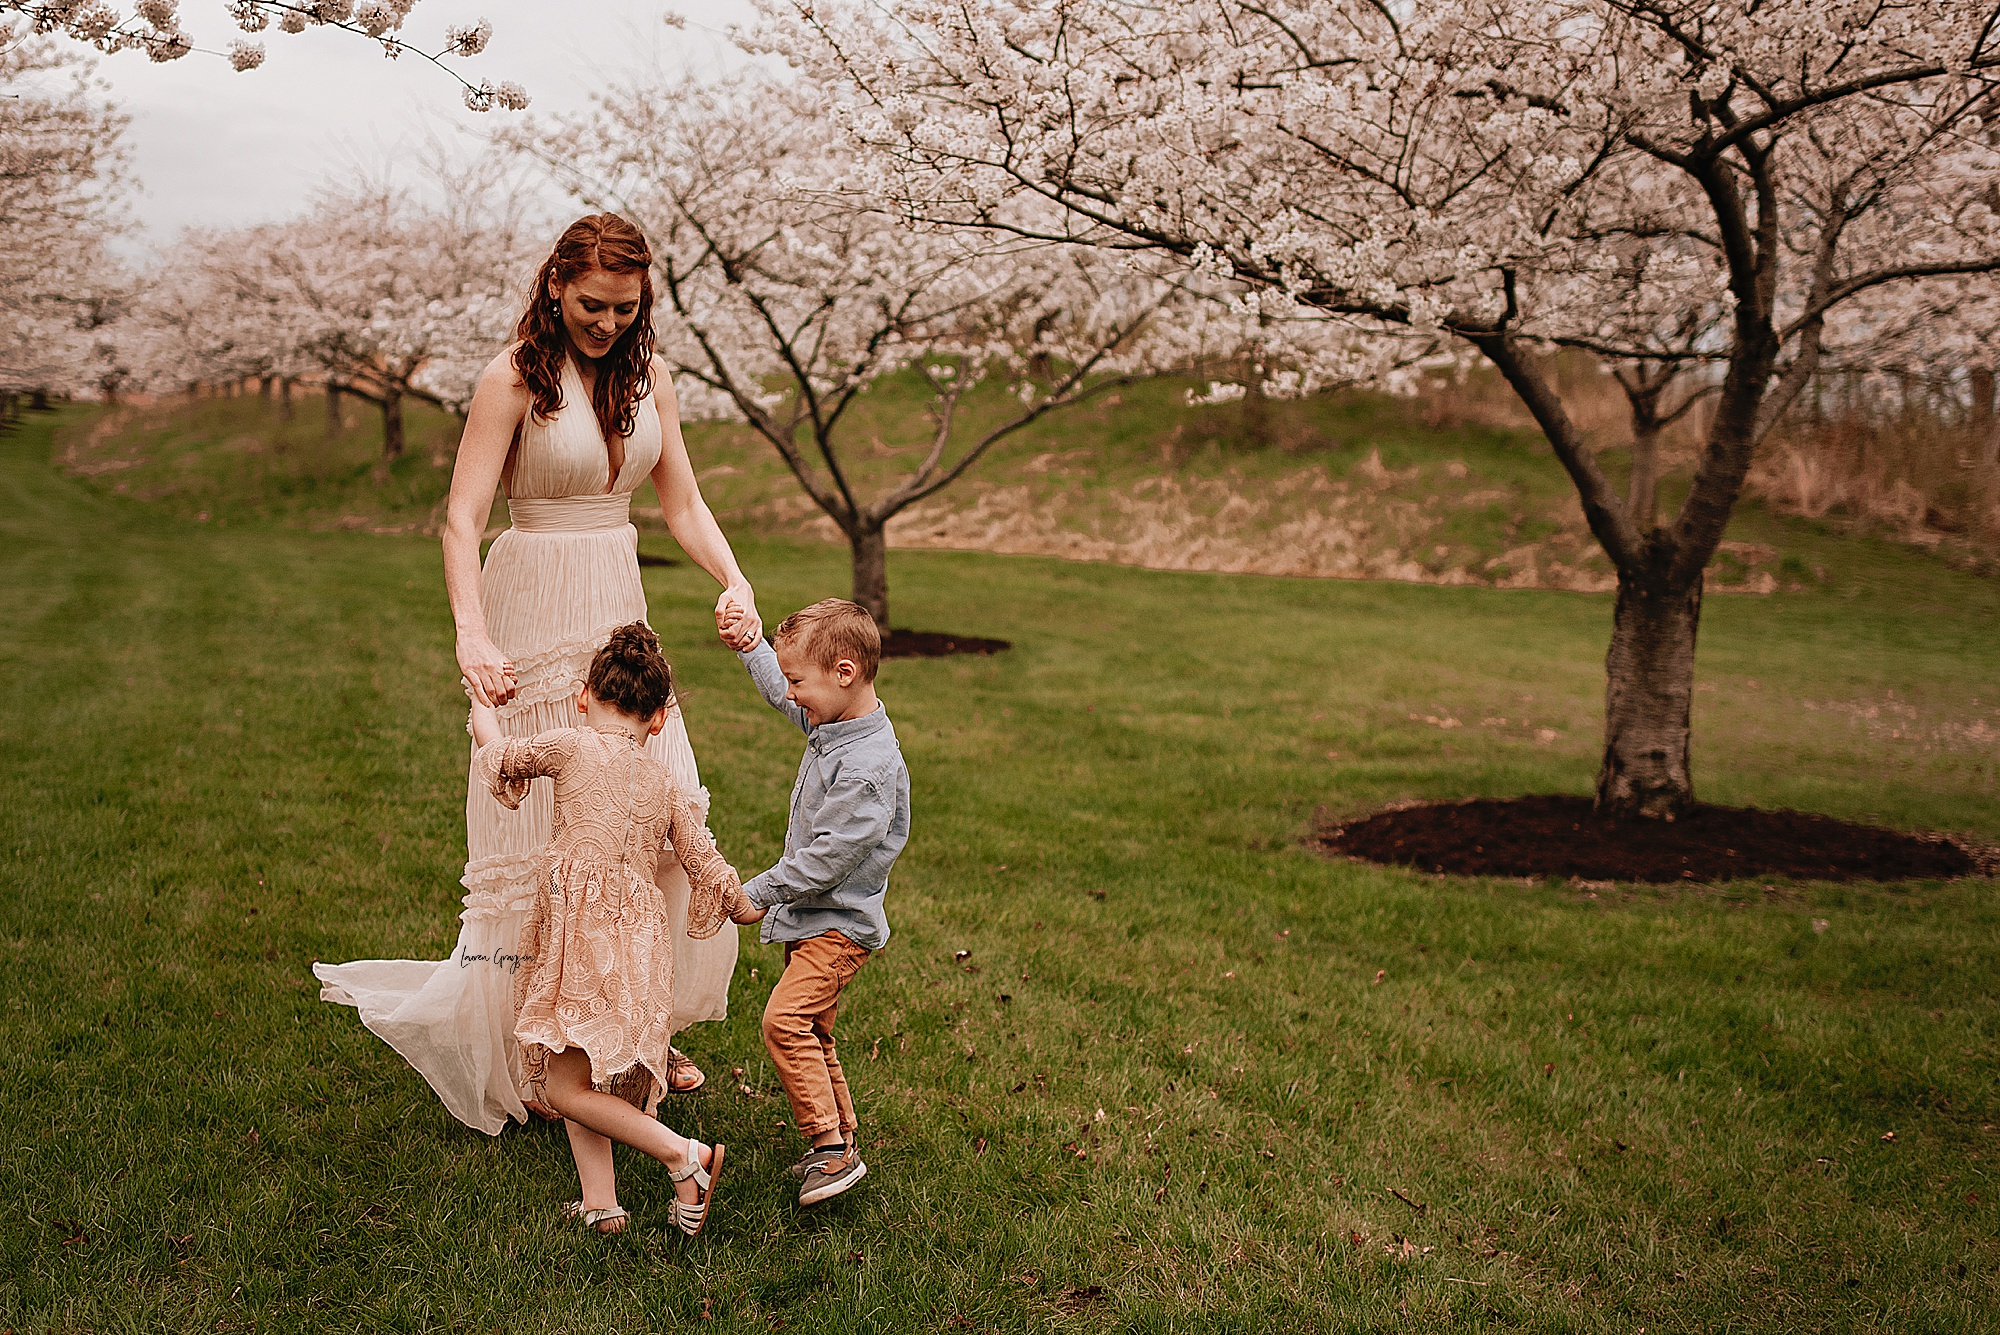 lauren-grayson-photography-cleveland-ohio-motherhood-family-child-photo-session-cherry-blossoms_0016.jpg